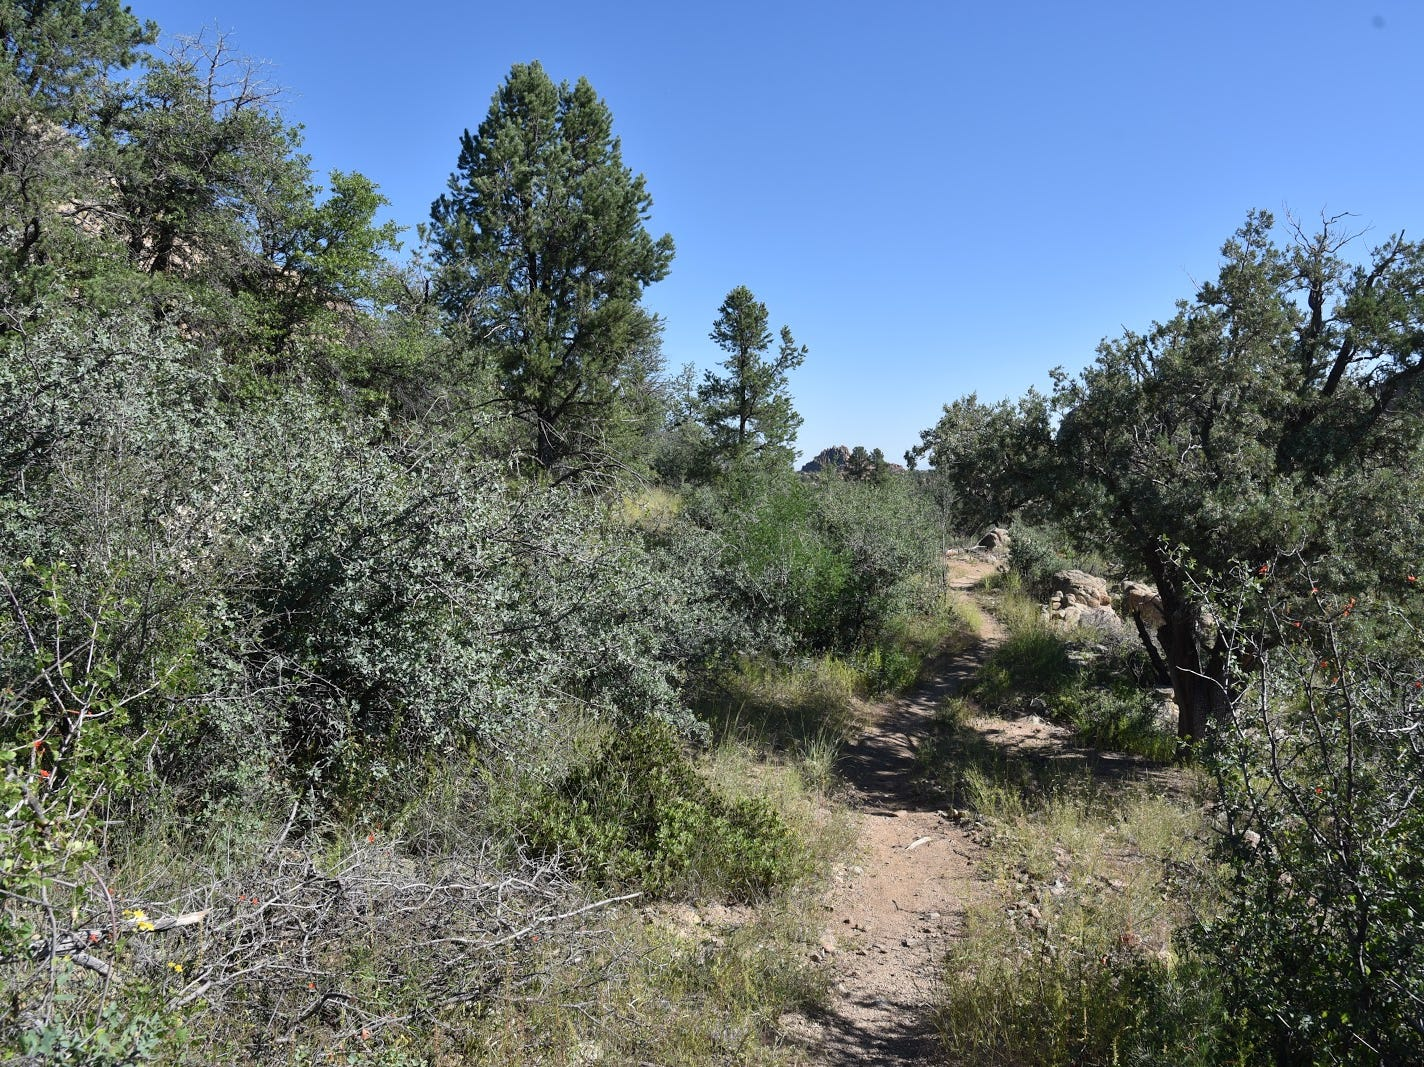 Some parts of the trails are covered in high-desert vegetation.